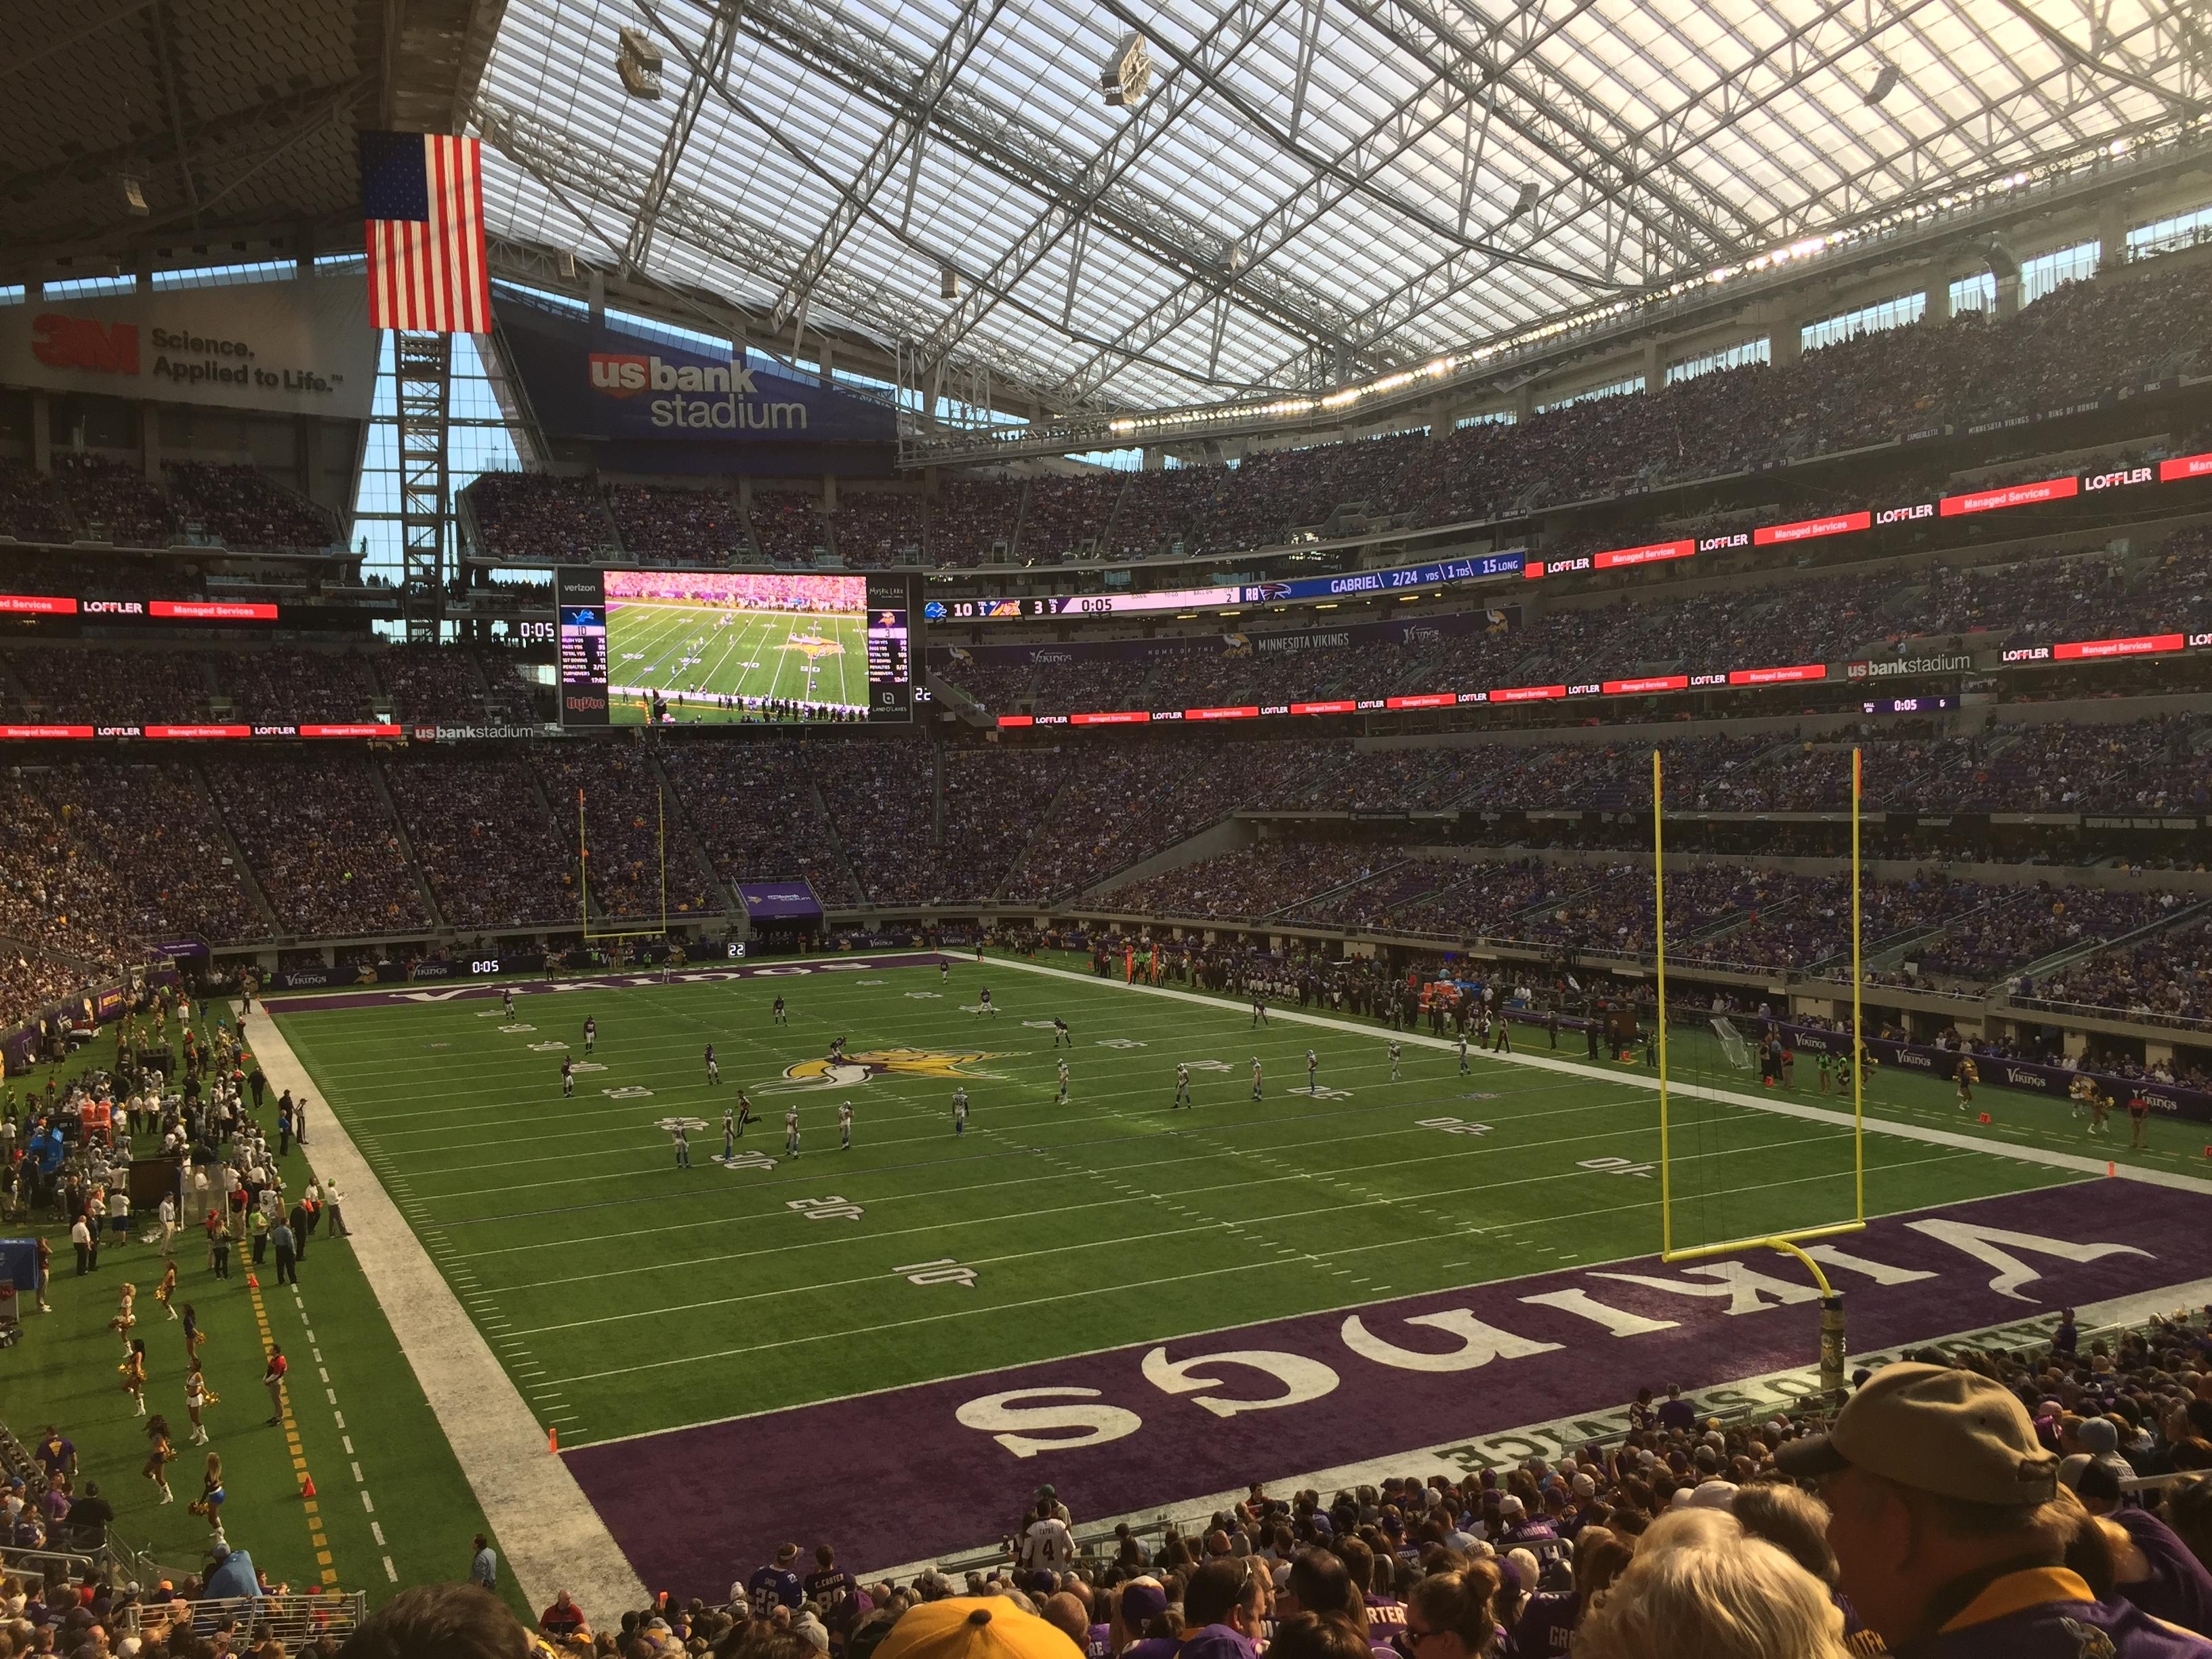 U.S. Bank Stadium Section 101 Row 31 Seat 12